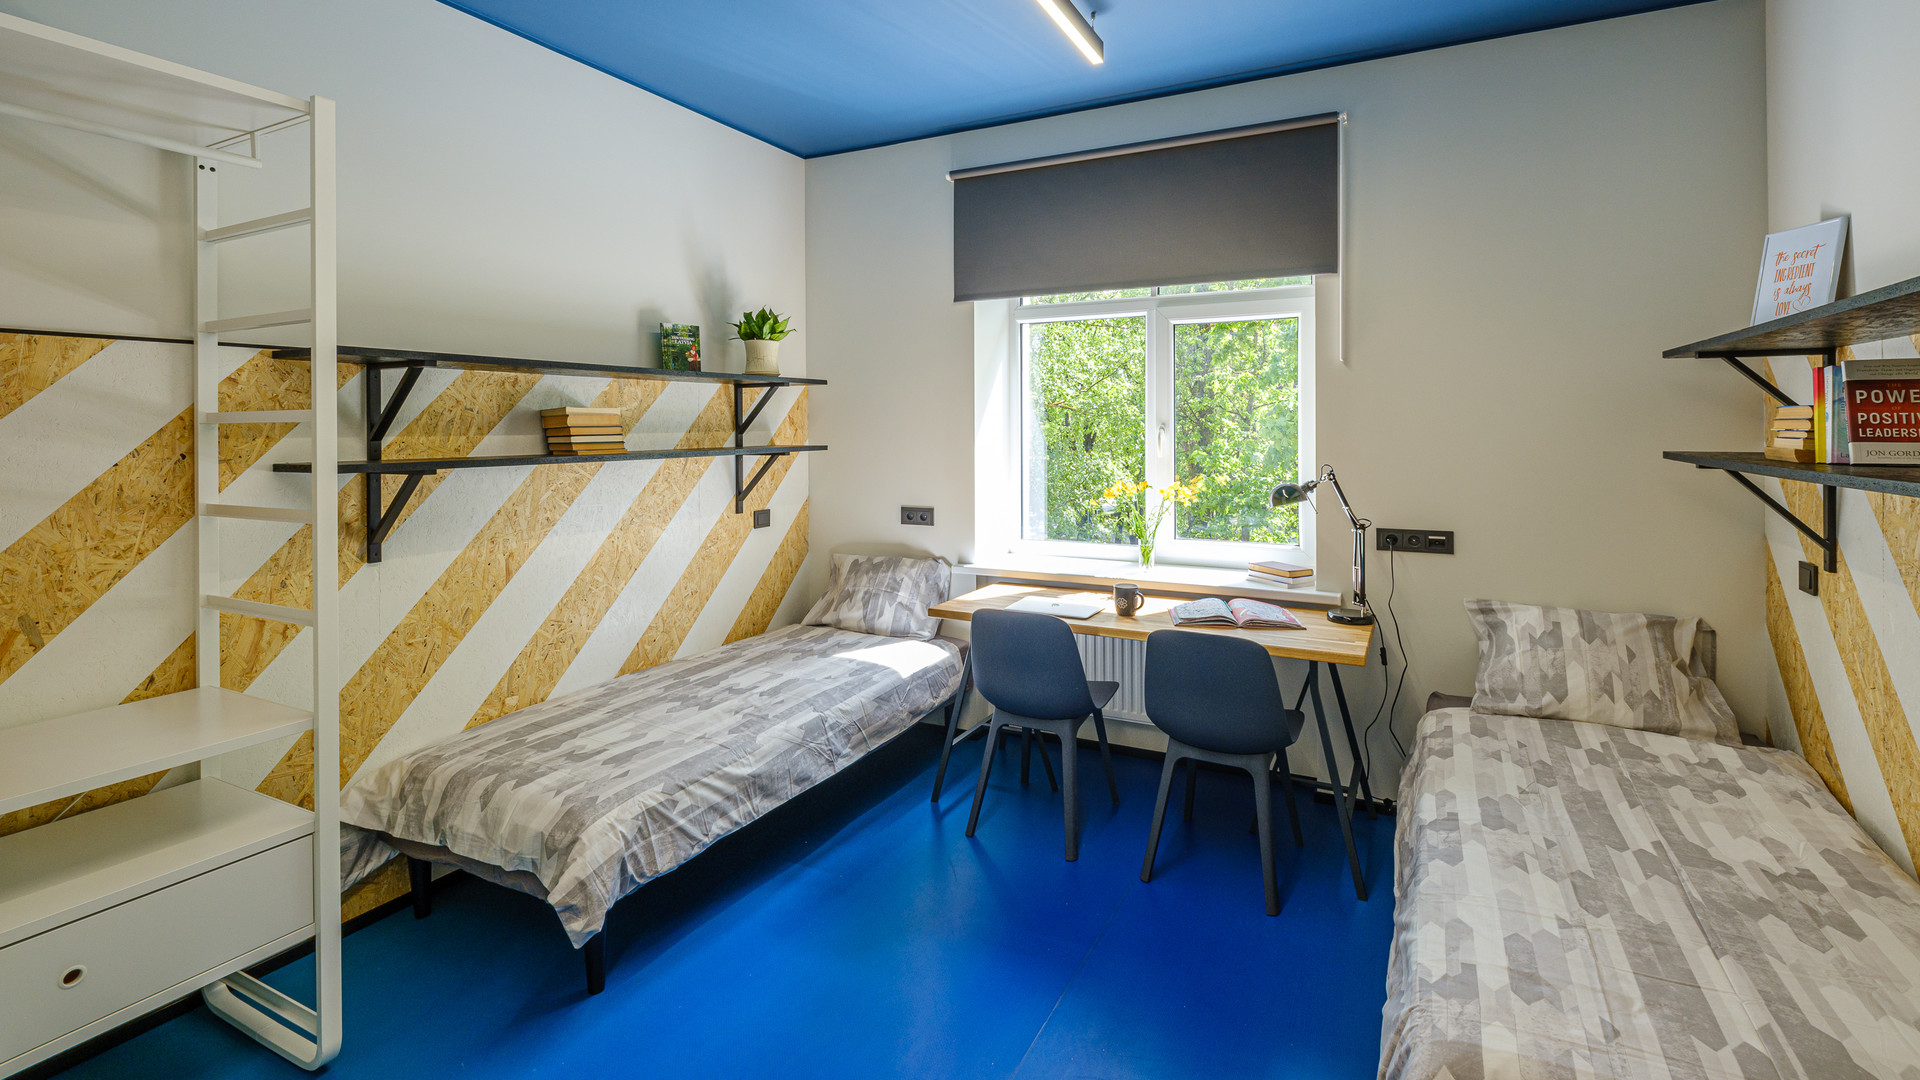 Lovely Twin Bedroom In A Cozy Student Hotel 1 Bedplace In A Twin Bedroom University Dorm Riga